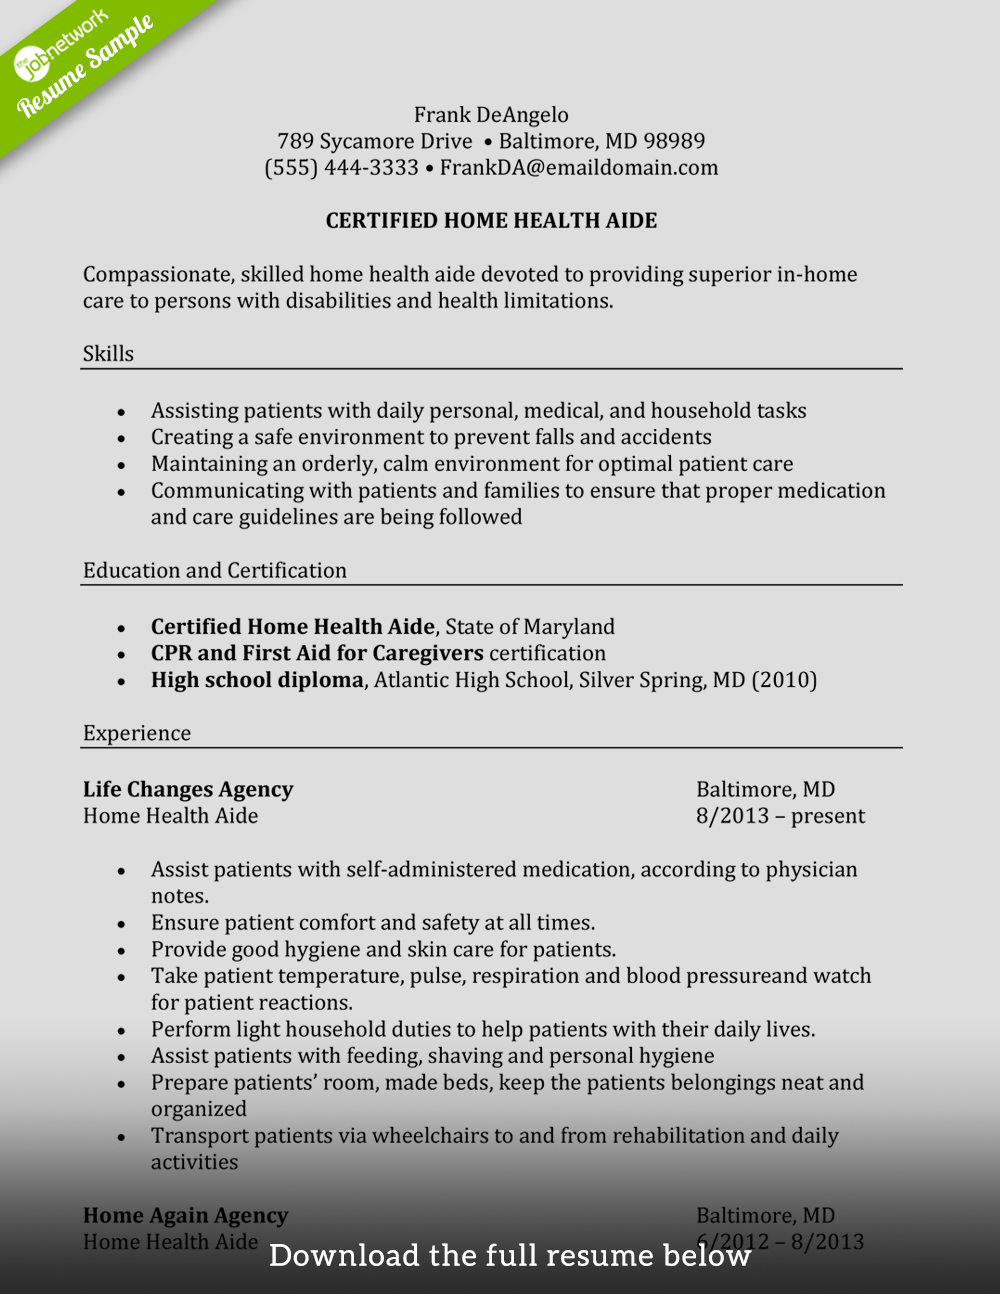 caregiver-resume-certified